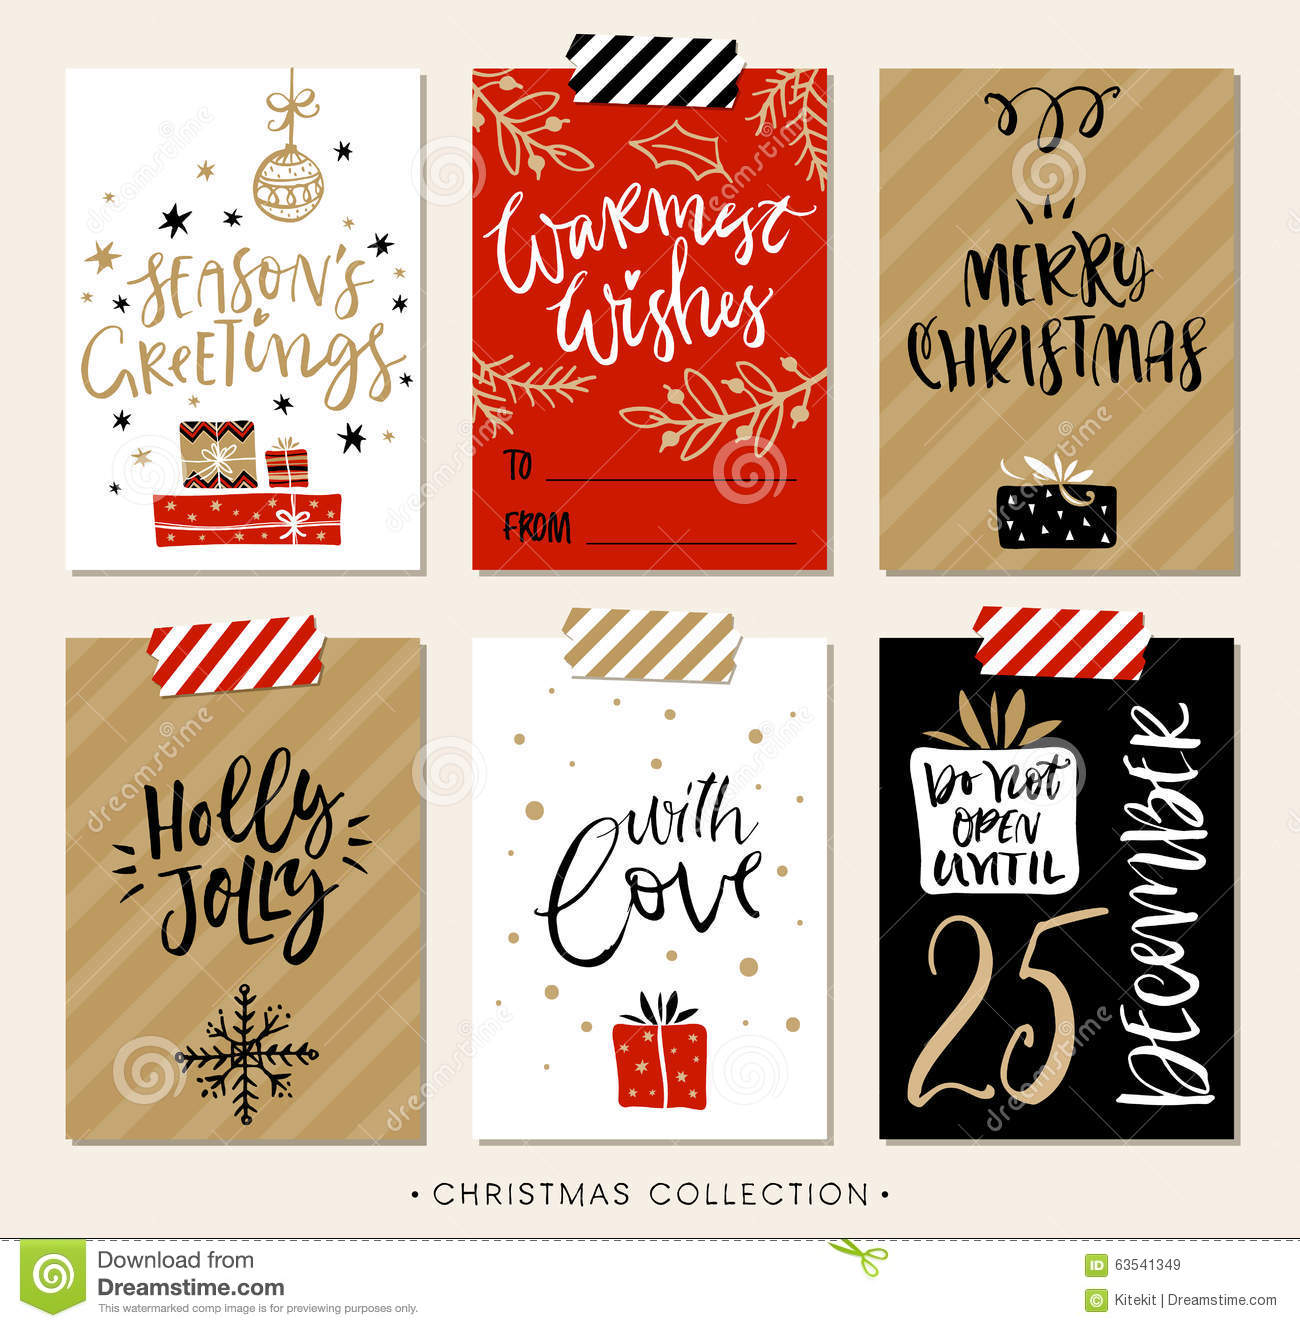 Merry christmas gift card design